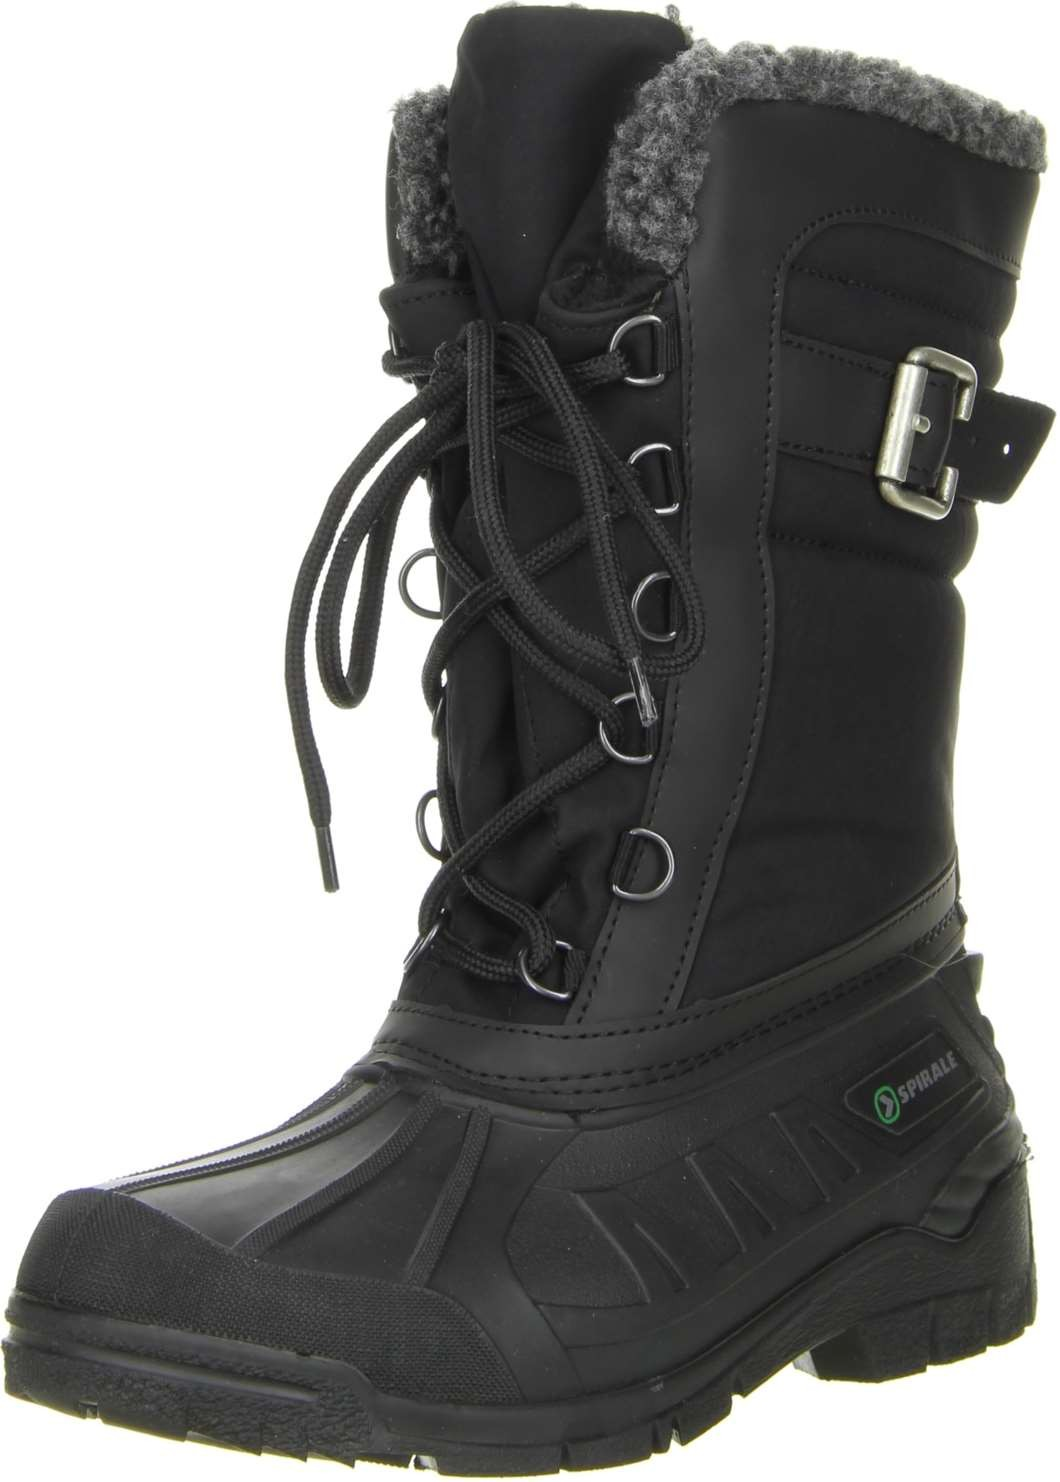 spirale damen winterstiefel snowboots schwarz damenschuhe winterstiefel. Black Bedroom Furniture Sets. Home Design Ideas